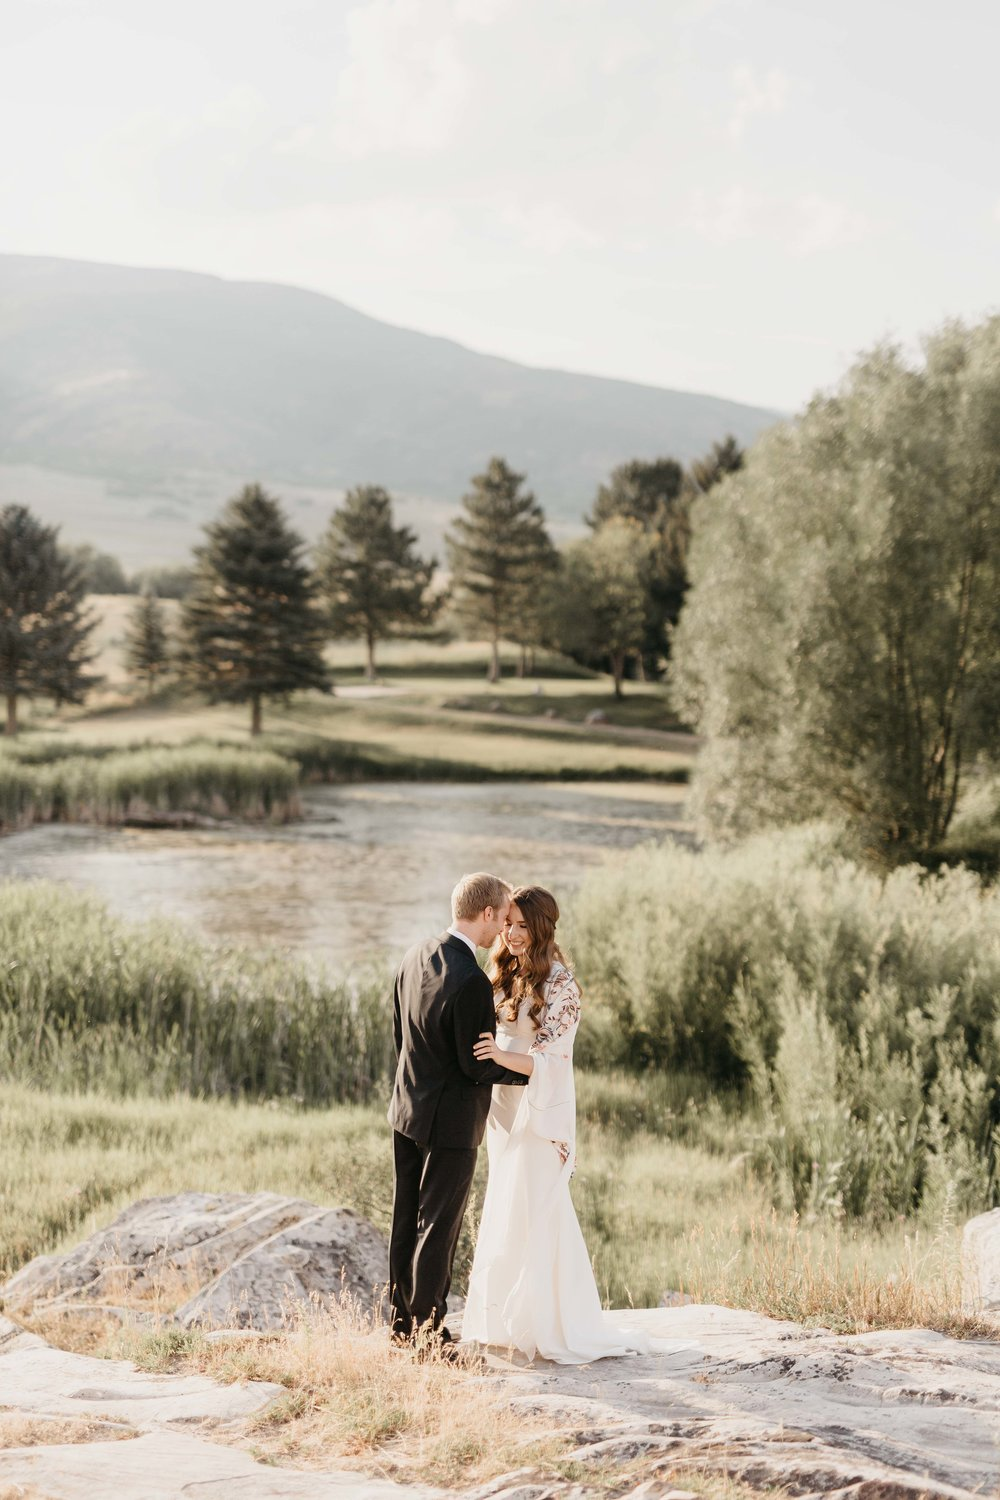 Utah-Wedding-Utah-Photographer-7.jpg